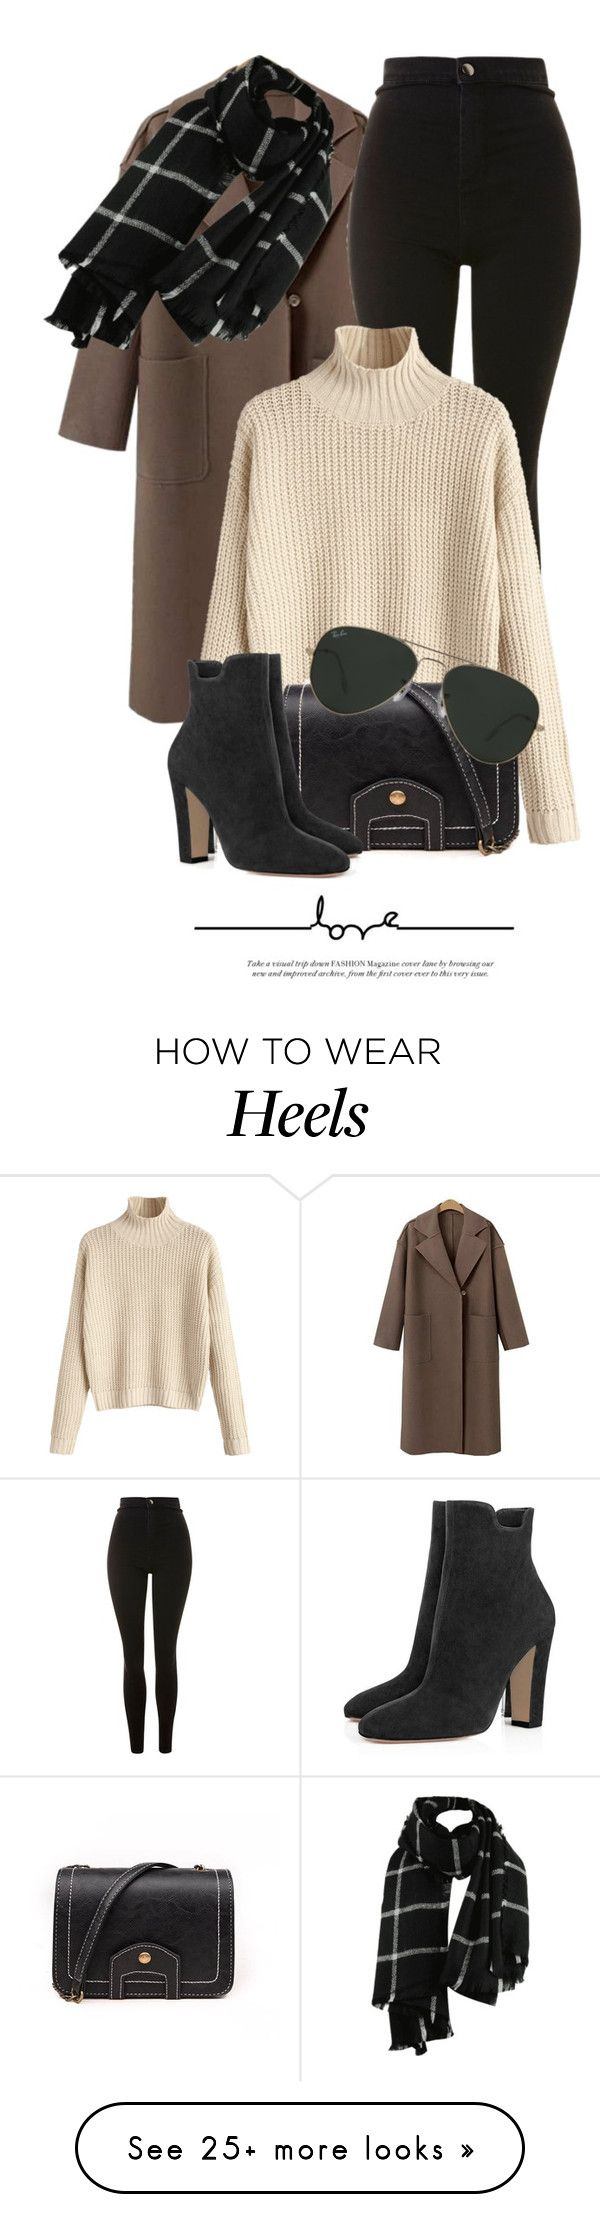 """Untitled #6307"" by monmondefou on Polyvore featuring Topshop and Ray-Ban"